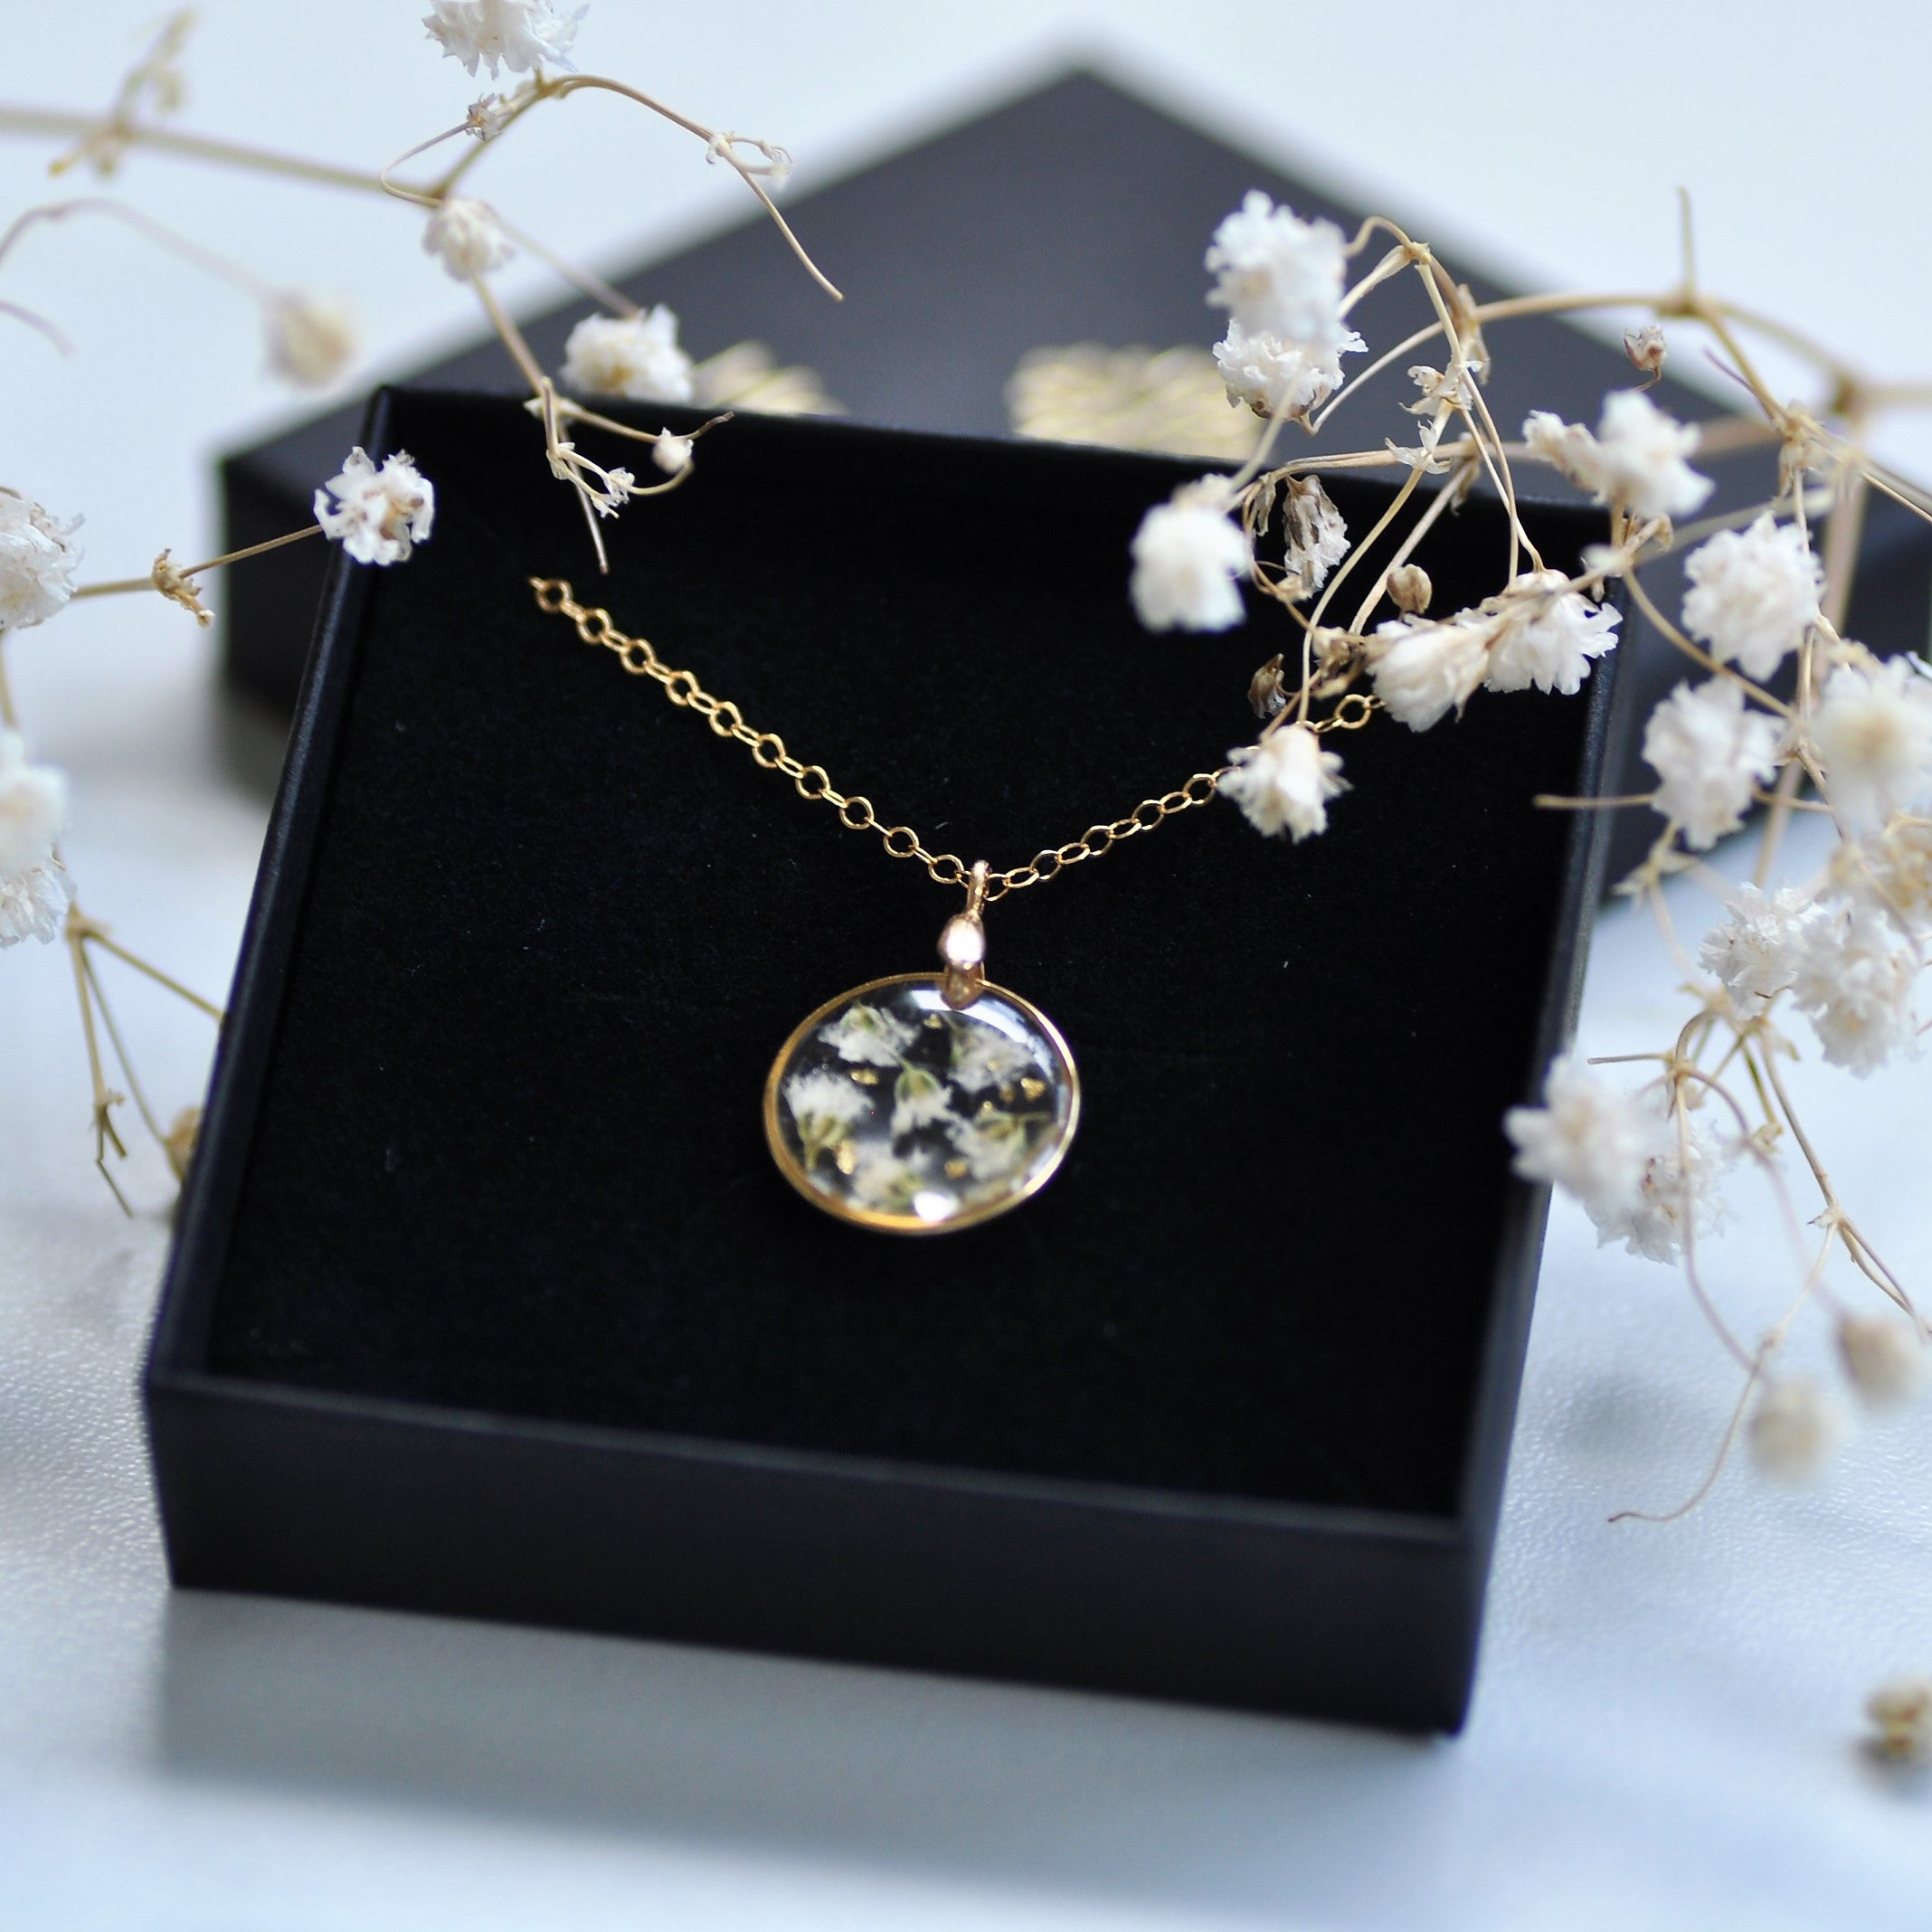 Gypsophila necklace - mini - Gold fill